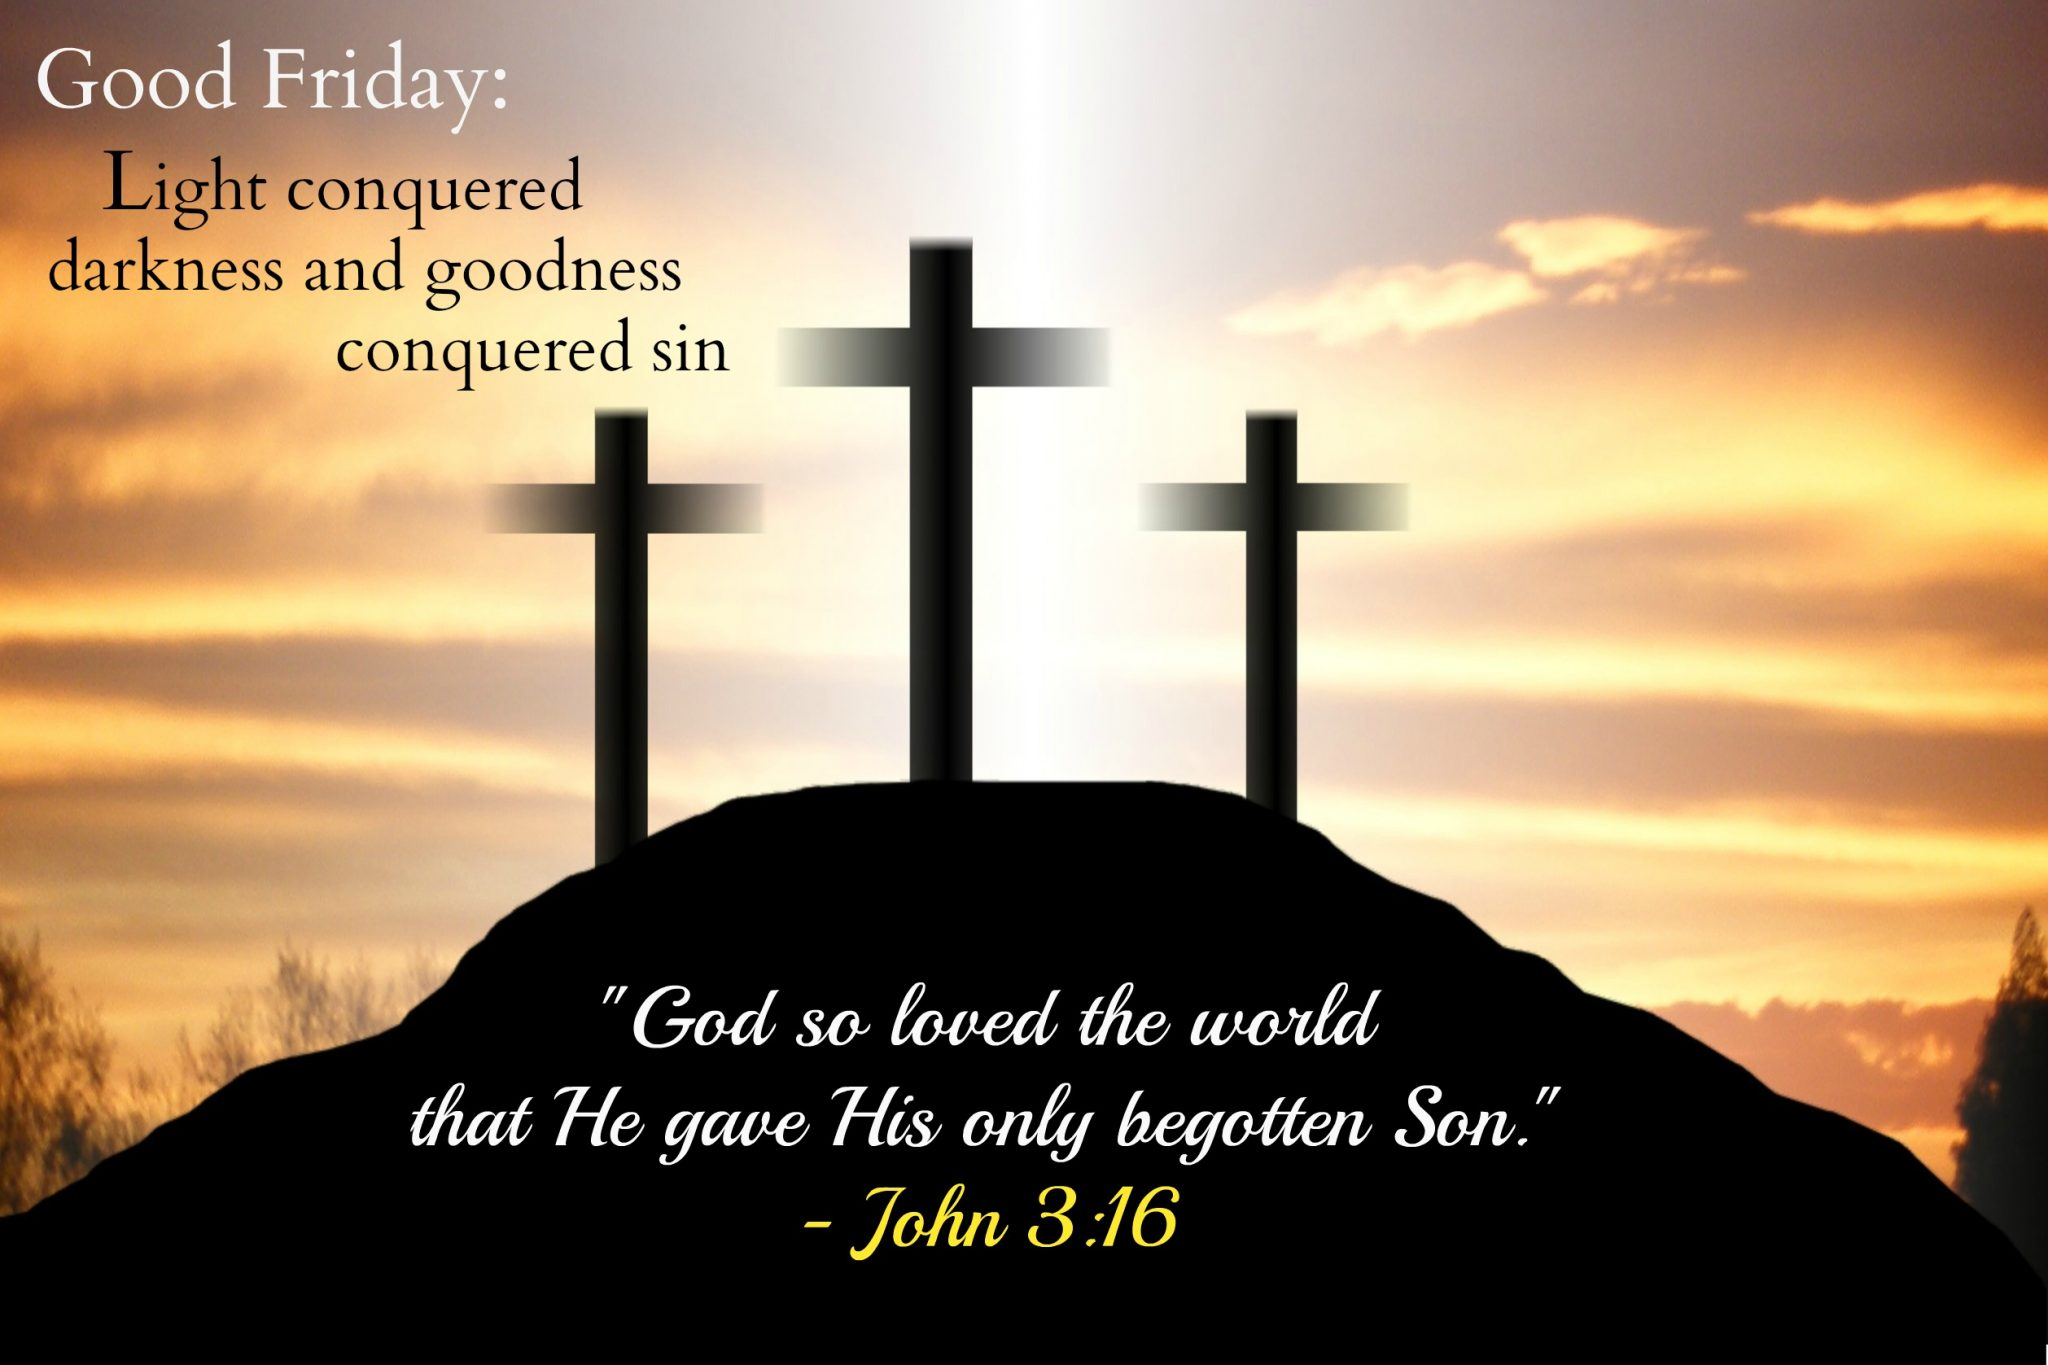 Good Friday Quotes Sayings Blessing with Images